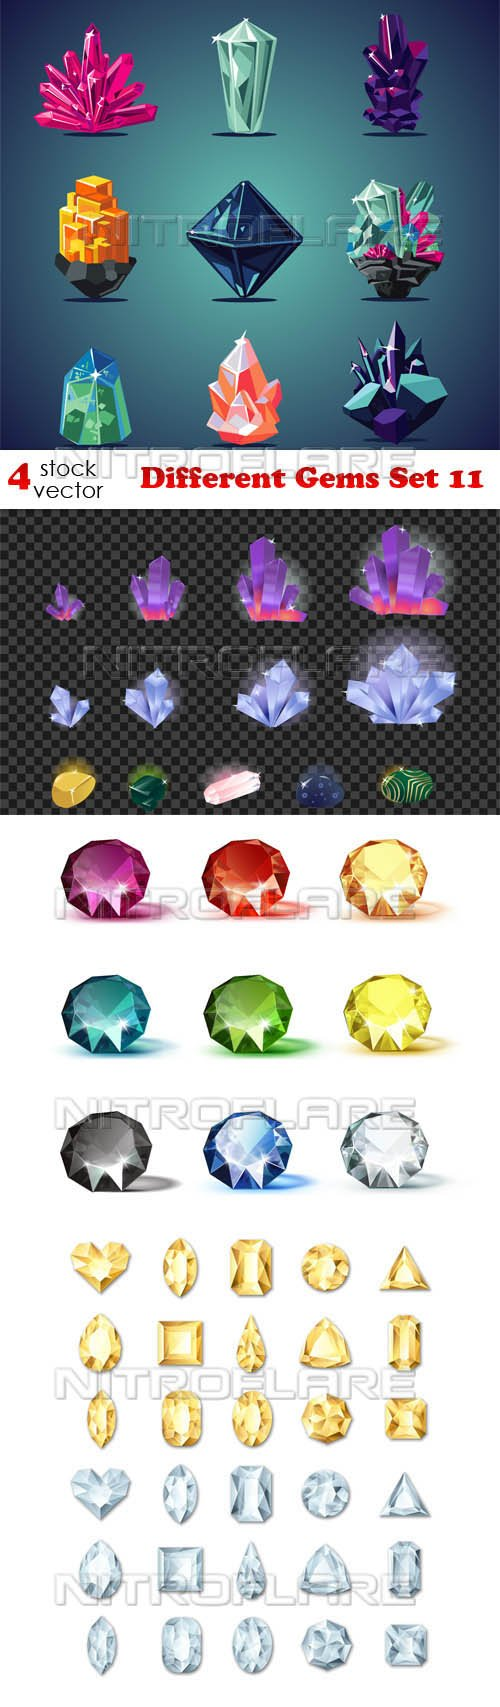 Vectors - Different Gems Set 11